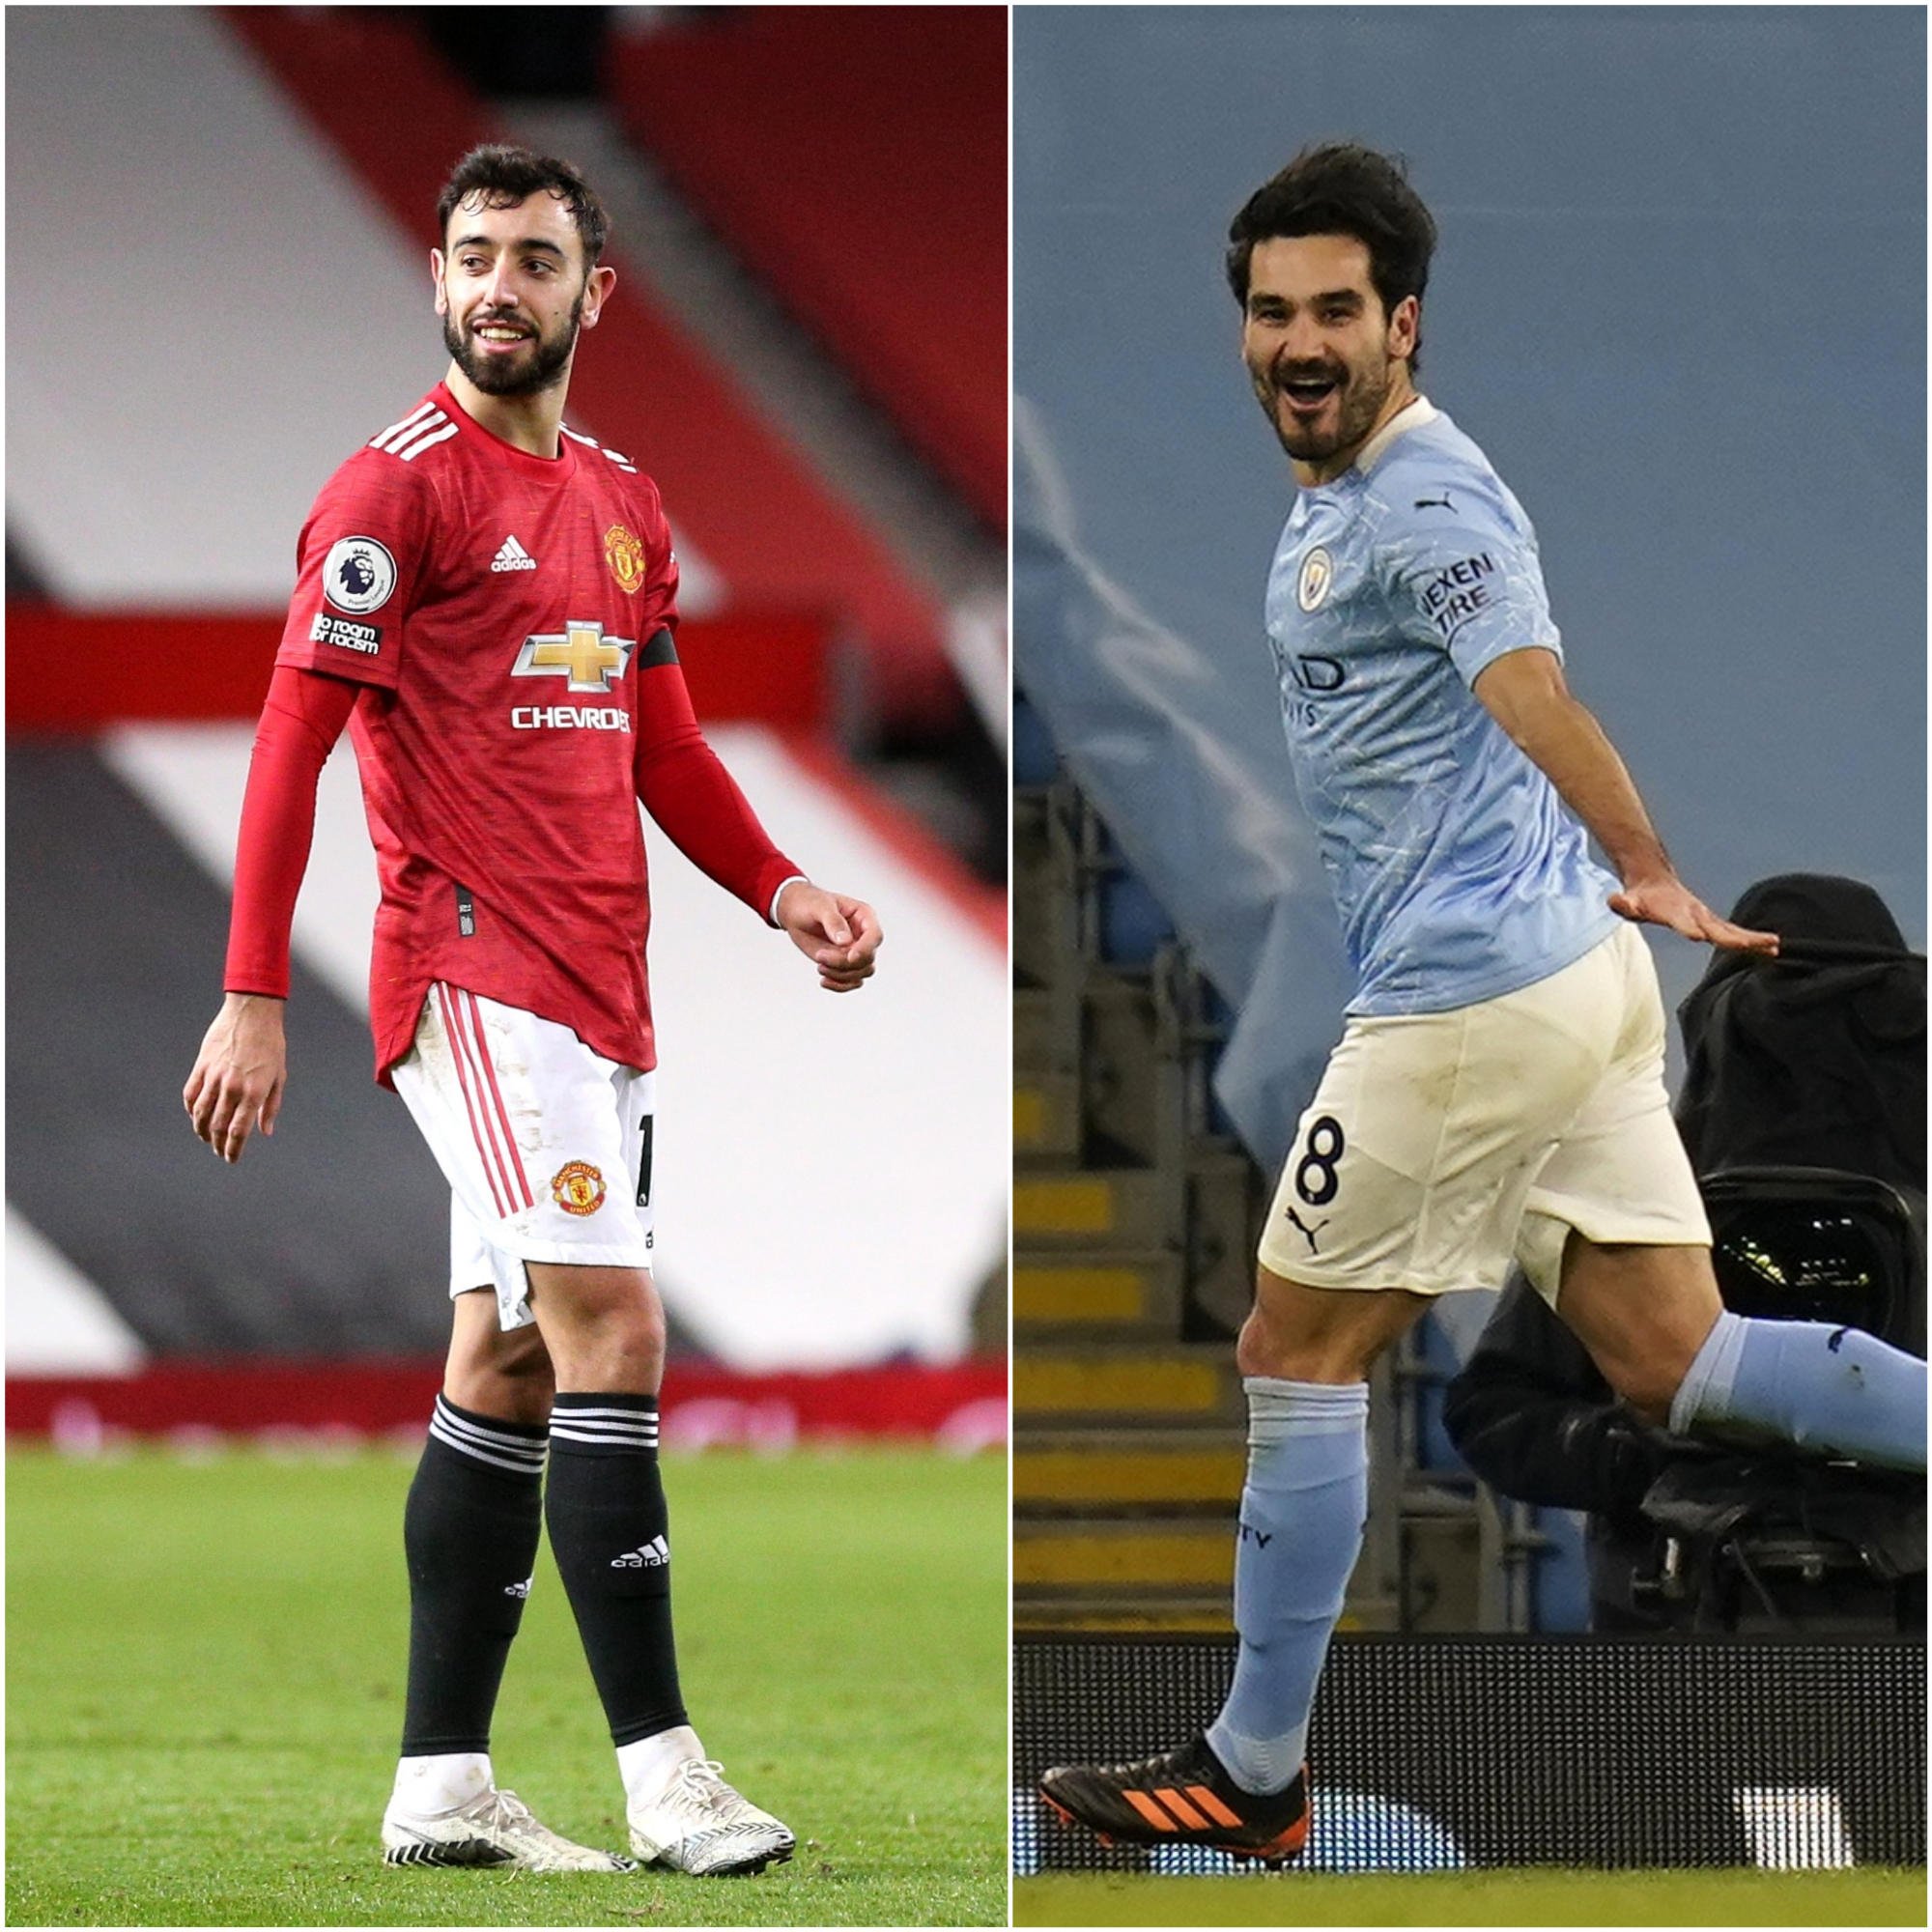 Bruno Fernandes, left, and Ilkay Gundogan